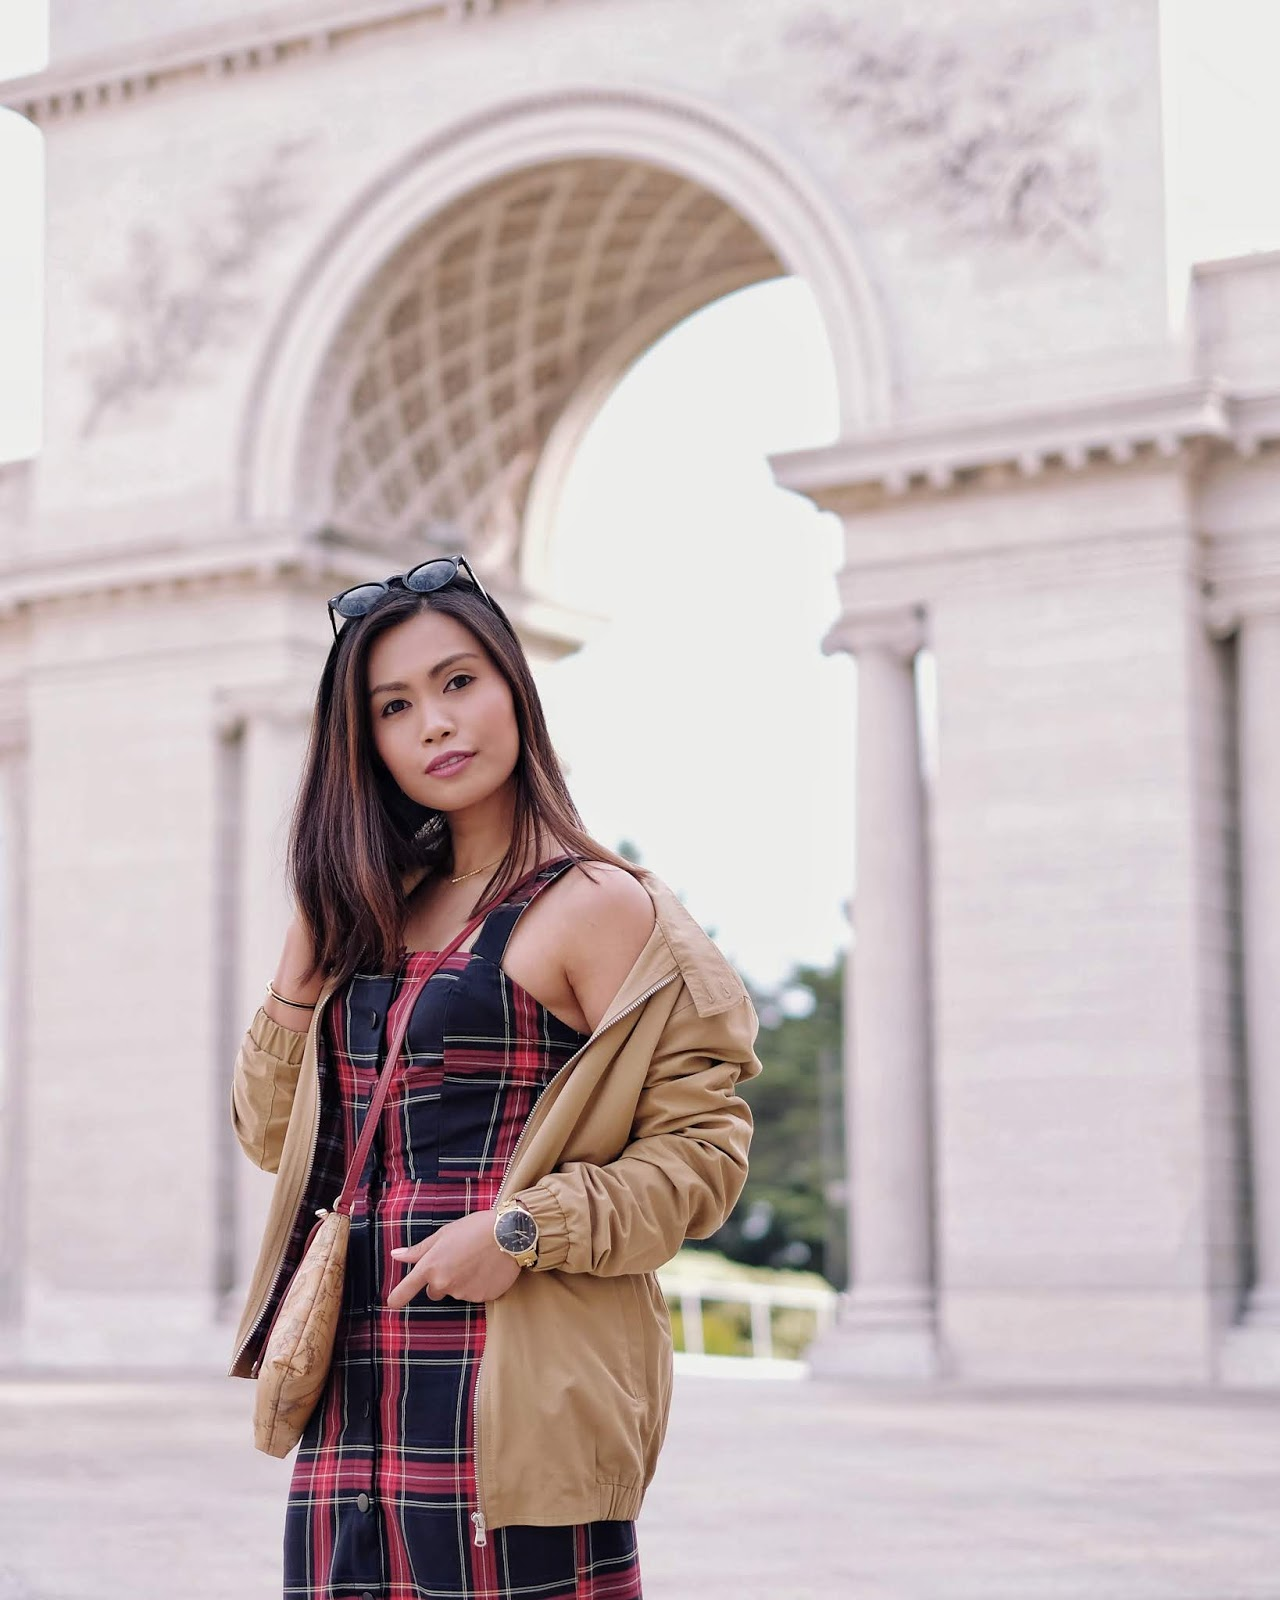 2019 year lifestyle- Fashion Fall foto dresses pictures